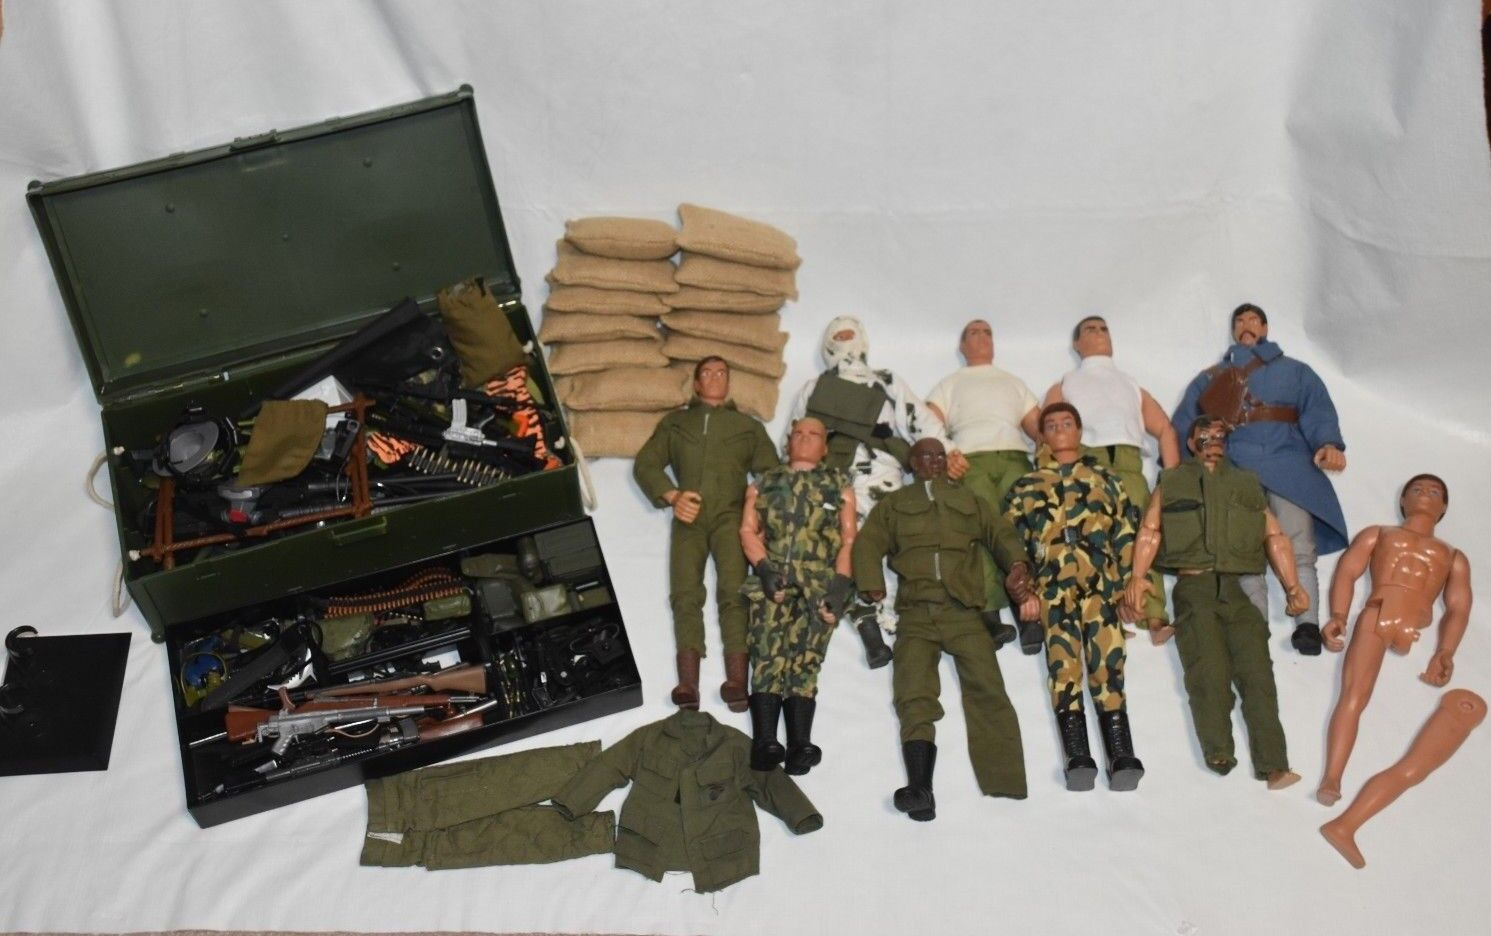 Vintage 1992 Hasbro G.I. Joe & Formative International Figures & Accessories Lot